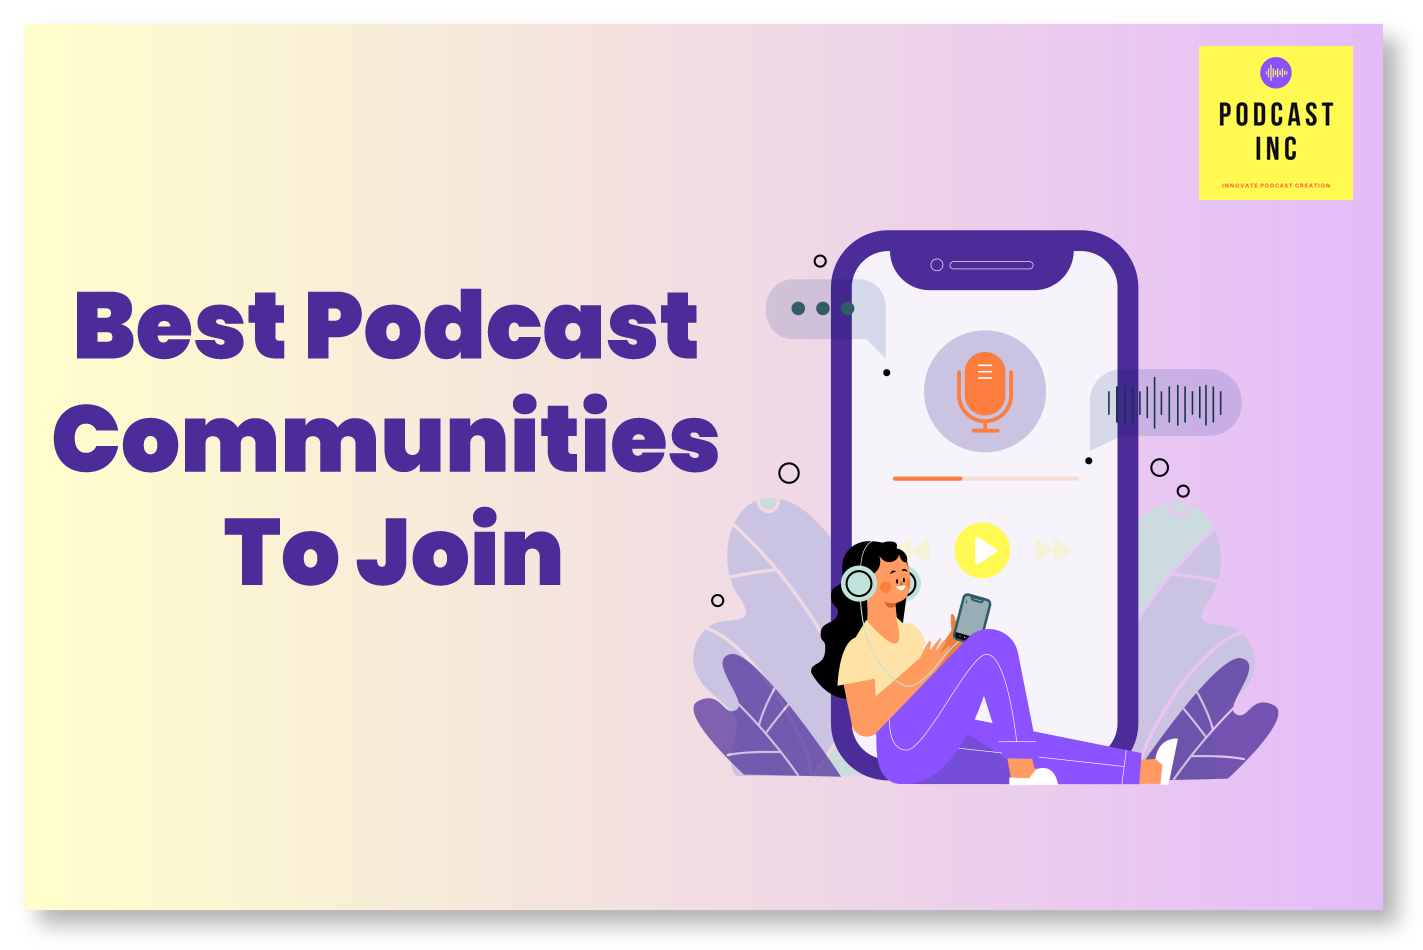 Best Podcast Communities to Join